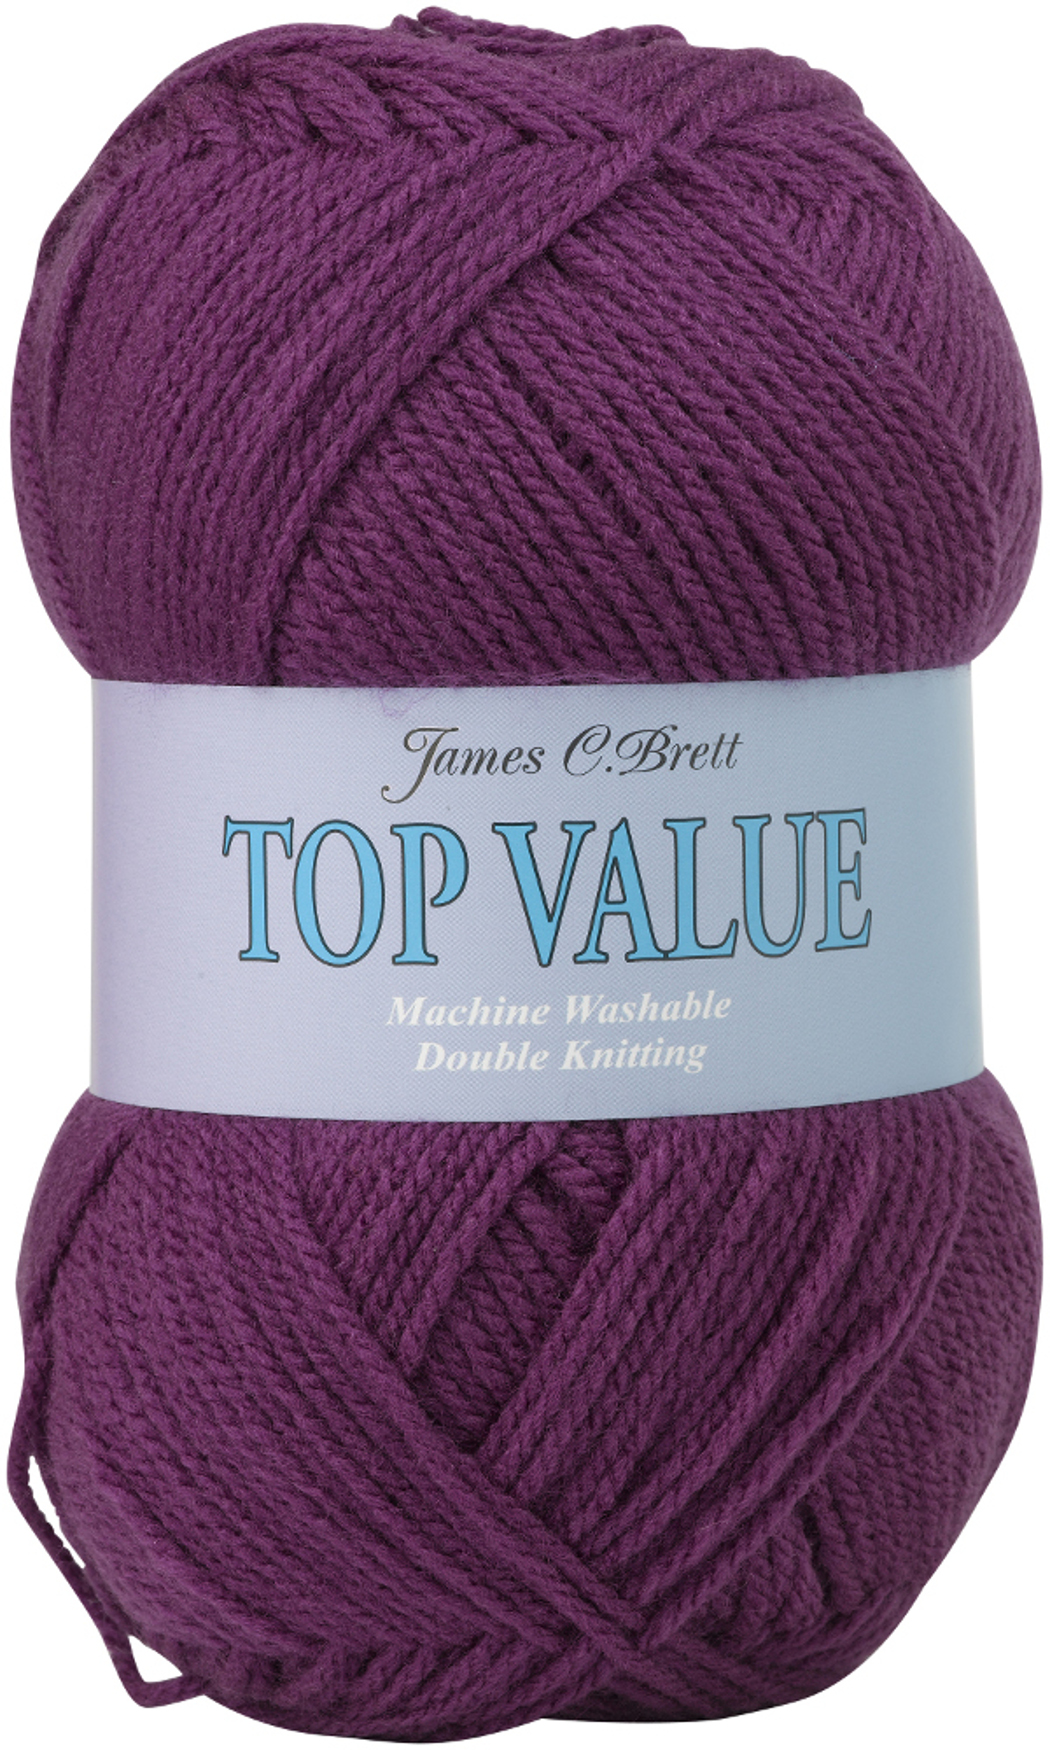 Knitting Equipment Uk : James brett top value dk machine washable yarn